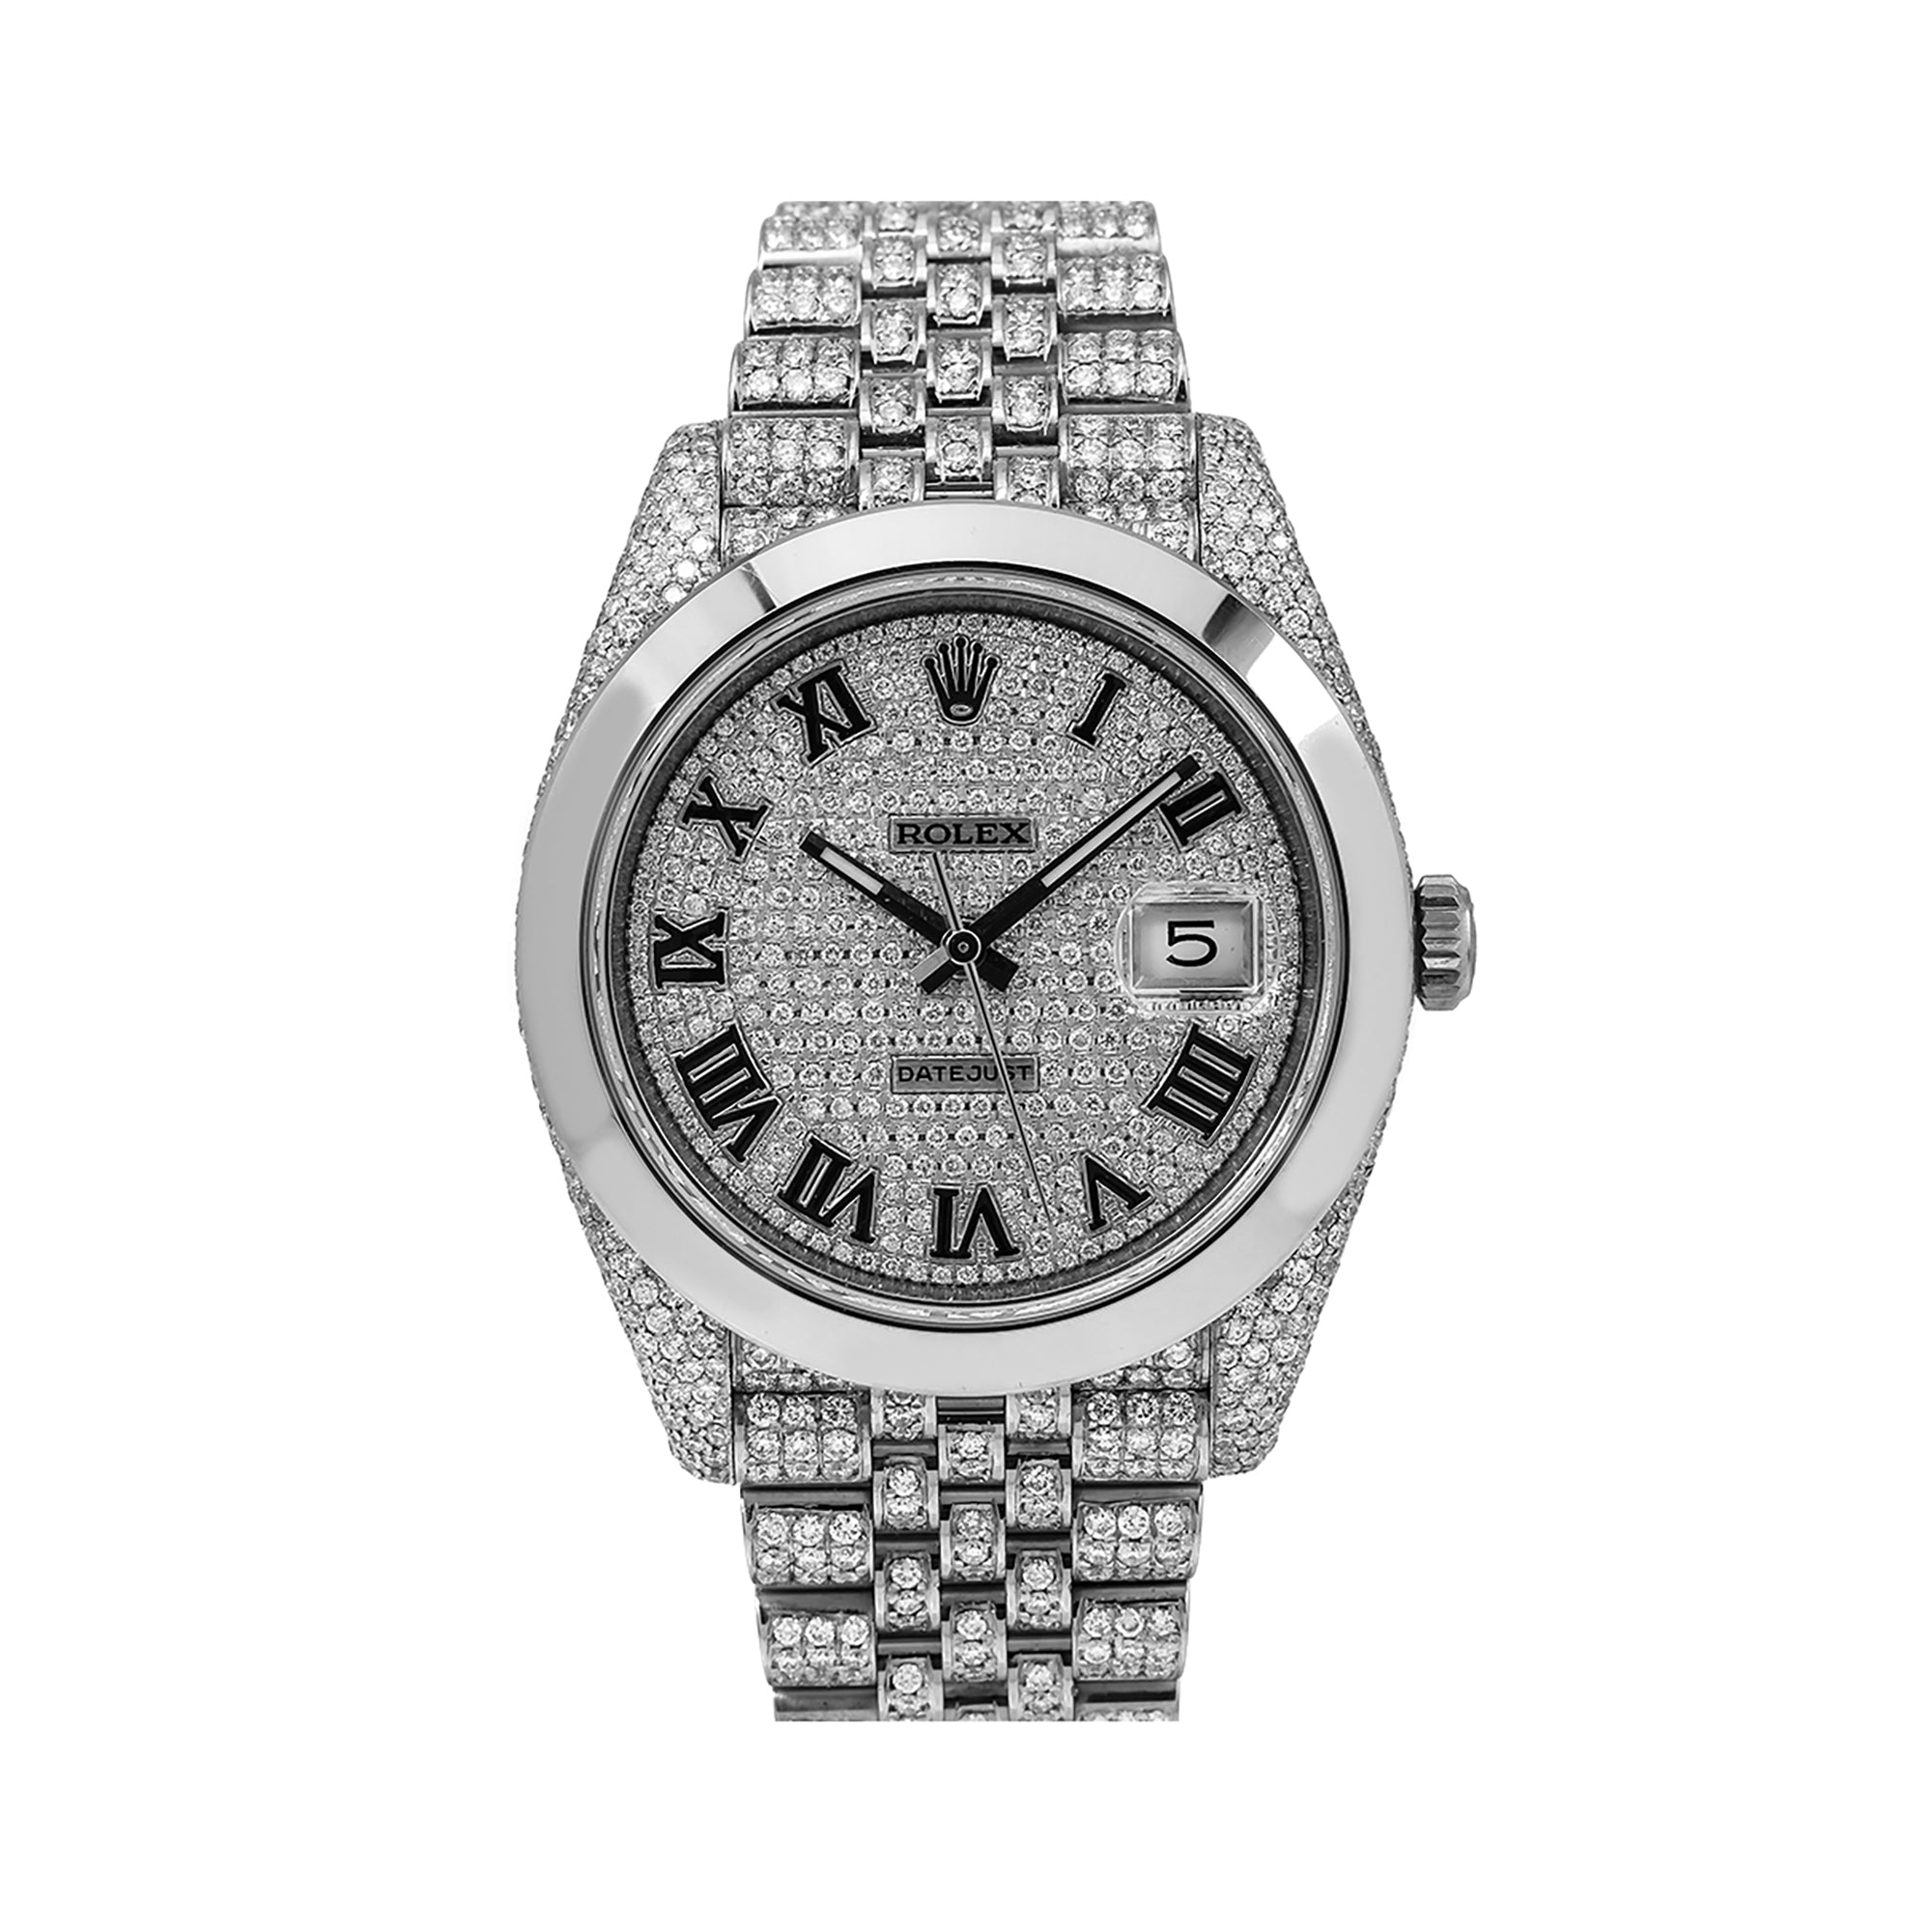 Rolex Datejust 126300 41MM Silver Diamond Dial With Stainless Steel Jubilee Bracelet